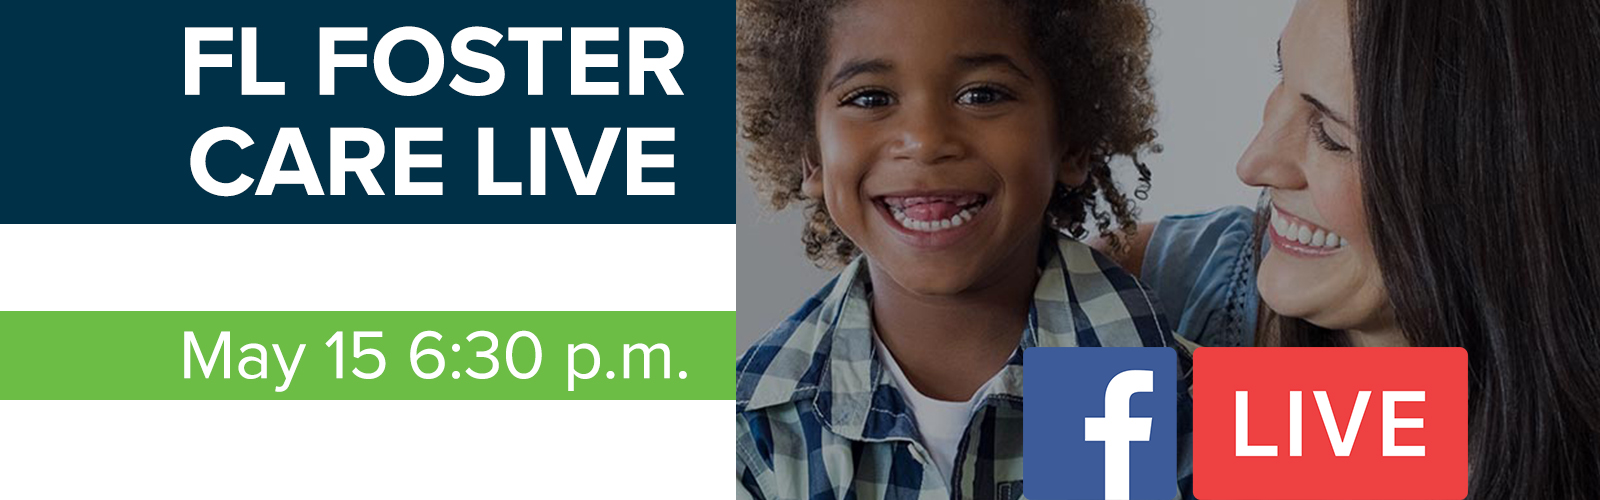 Your next step toward foster care? Facebook Live on May 15